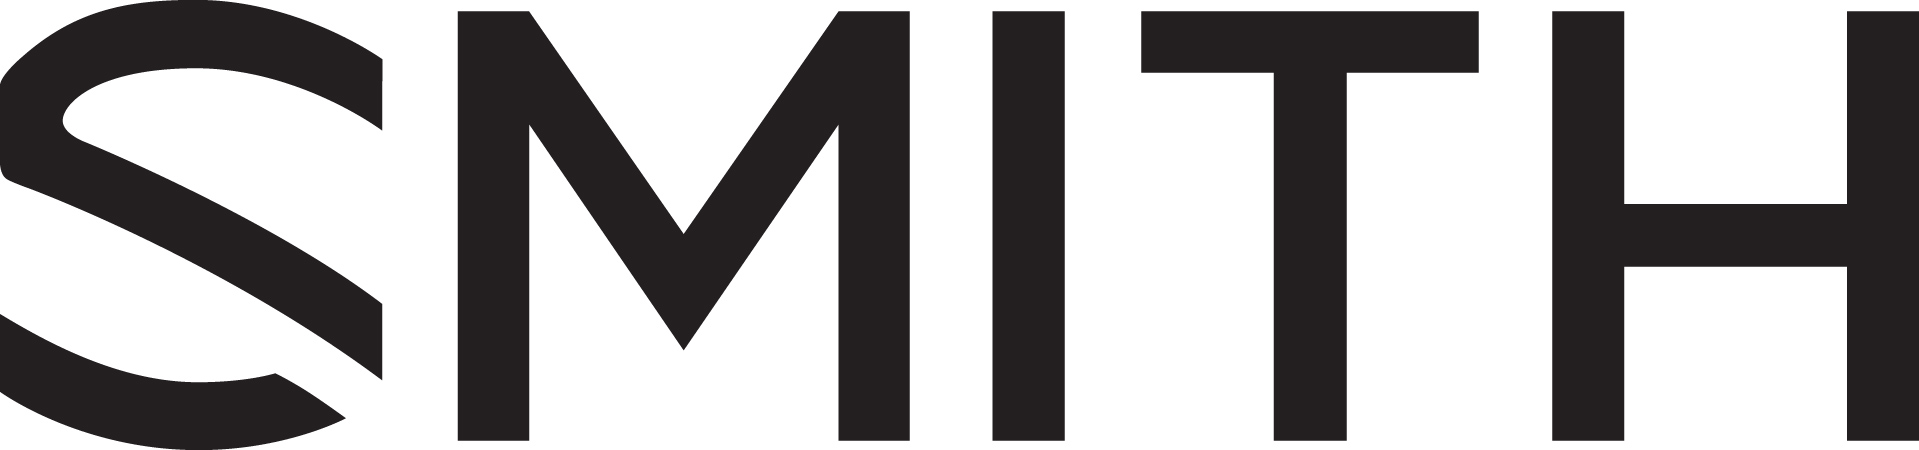 Smith_Logo_Primary_Final